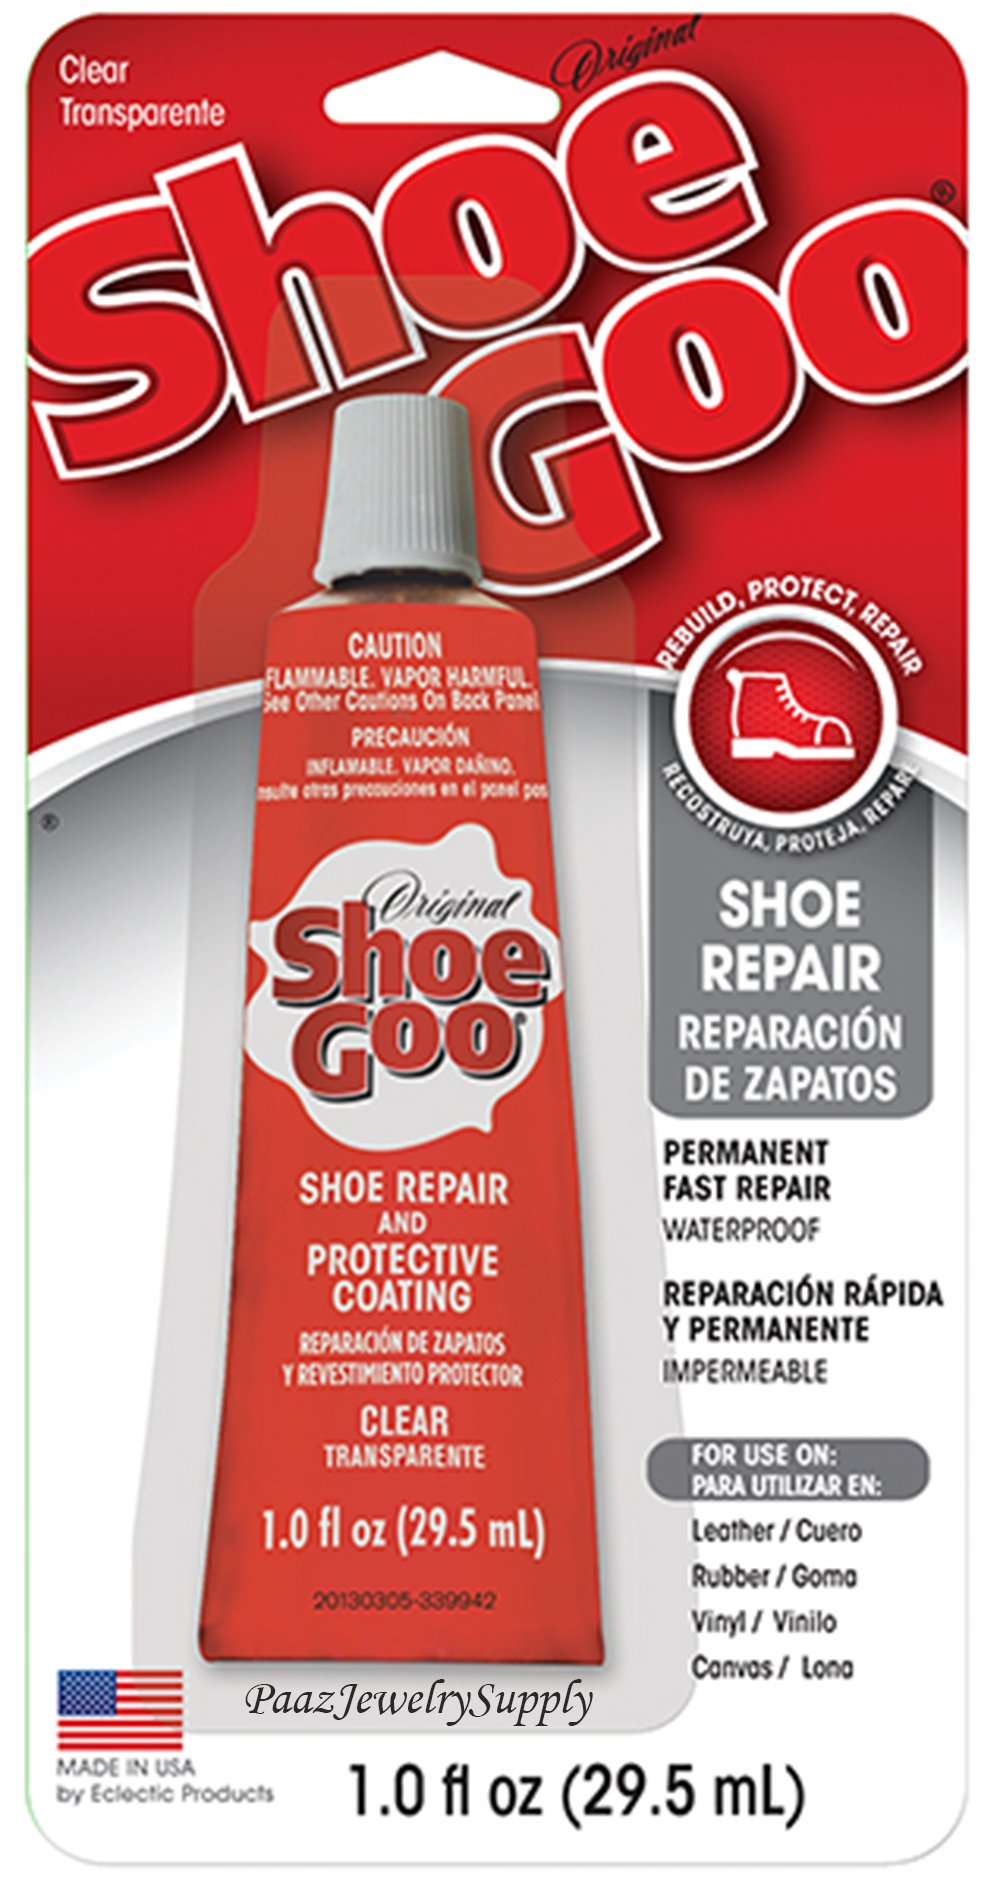 OZ Tube Shoe Goo